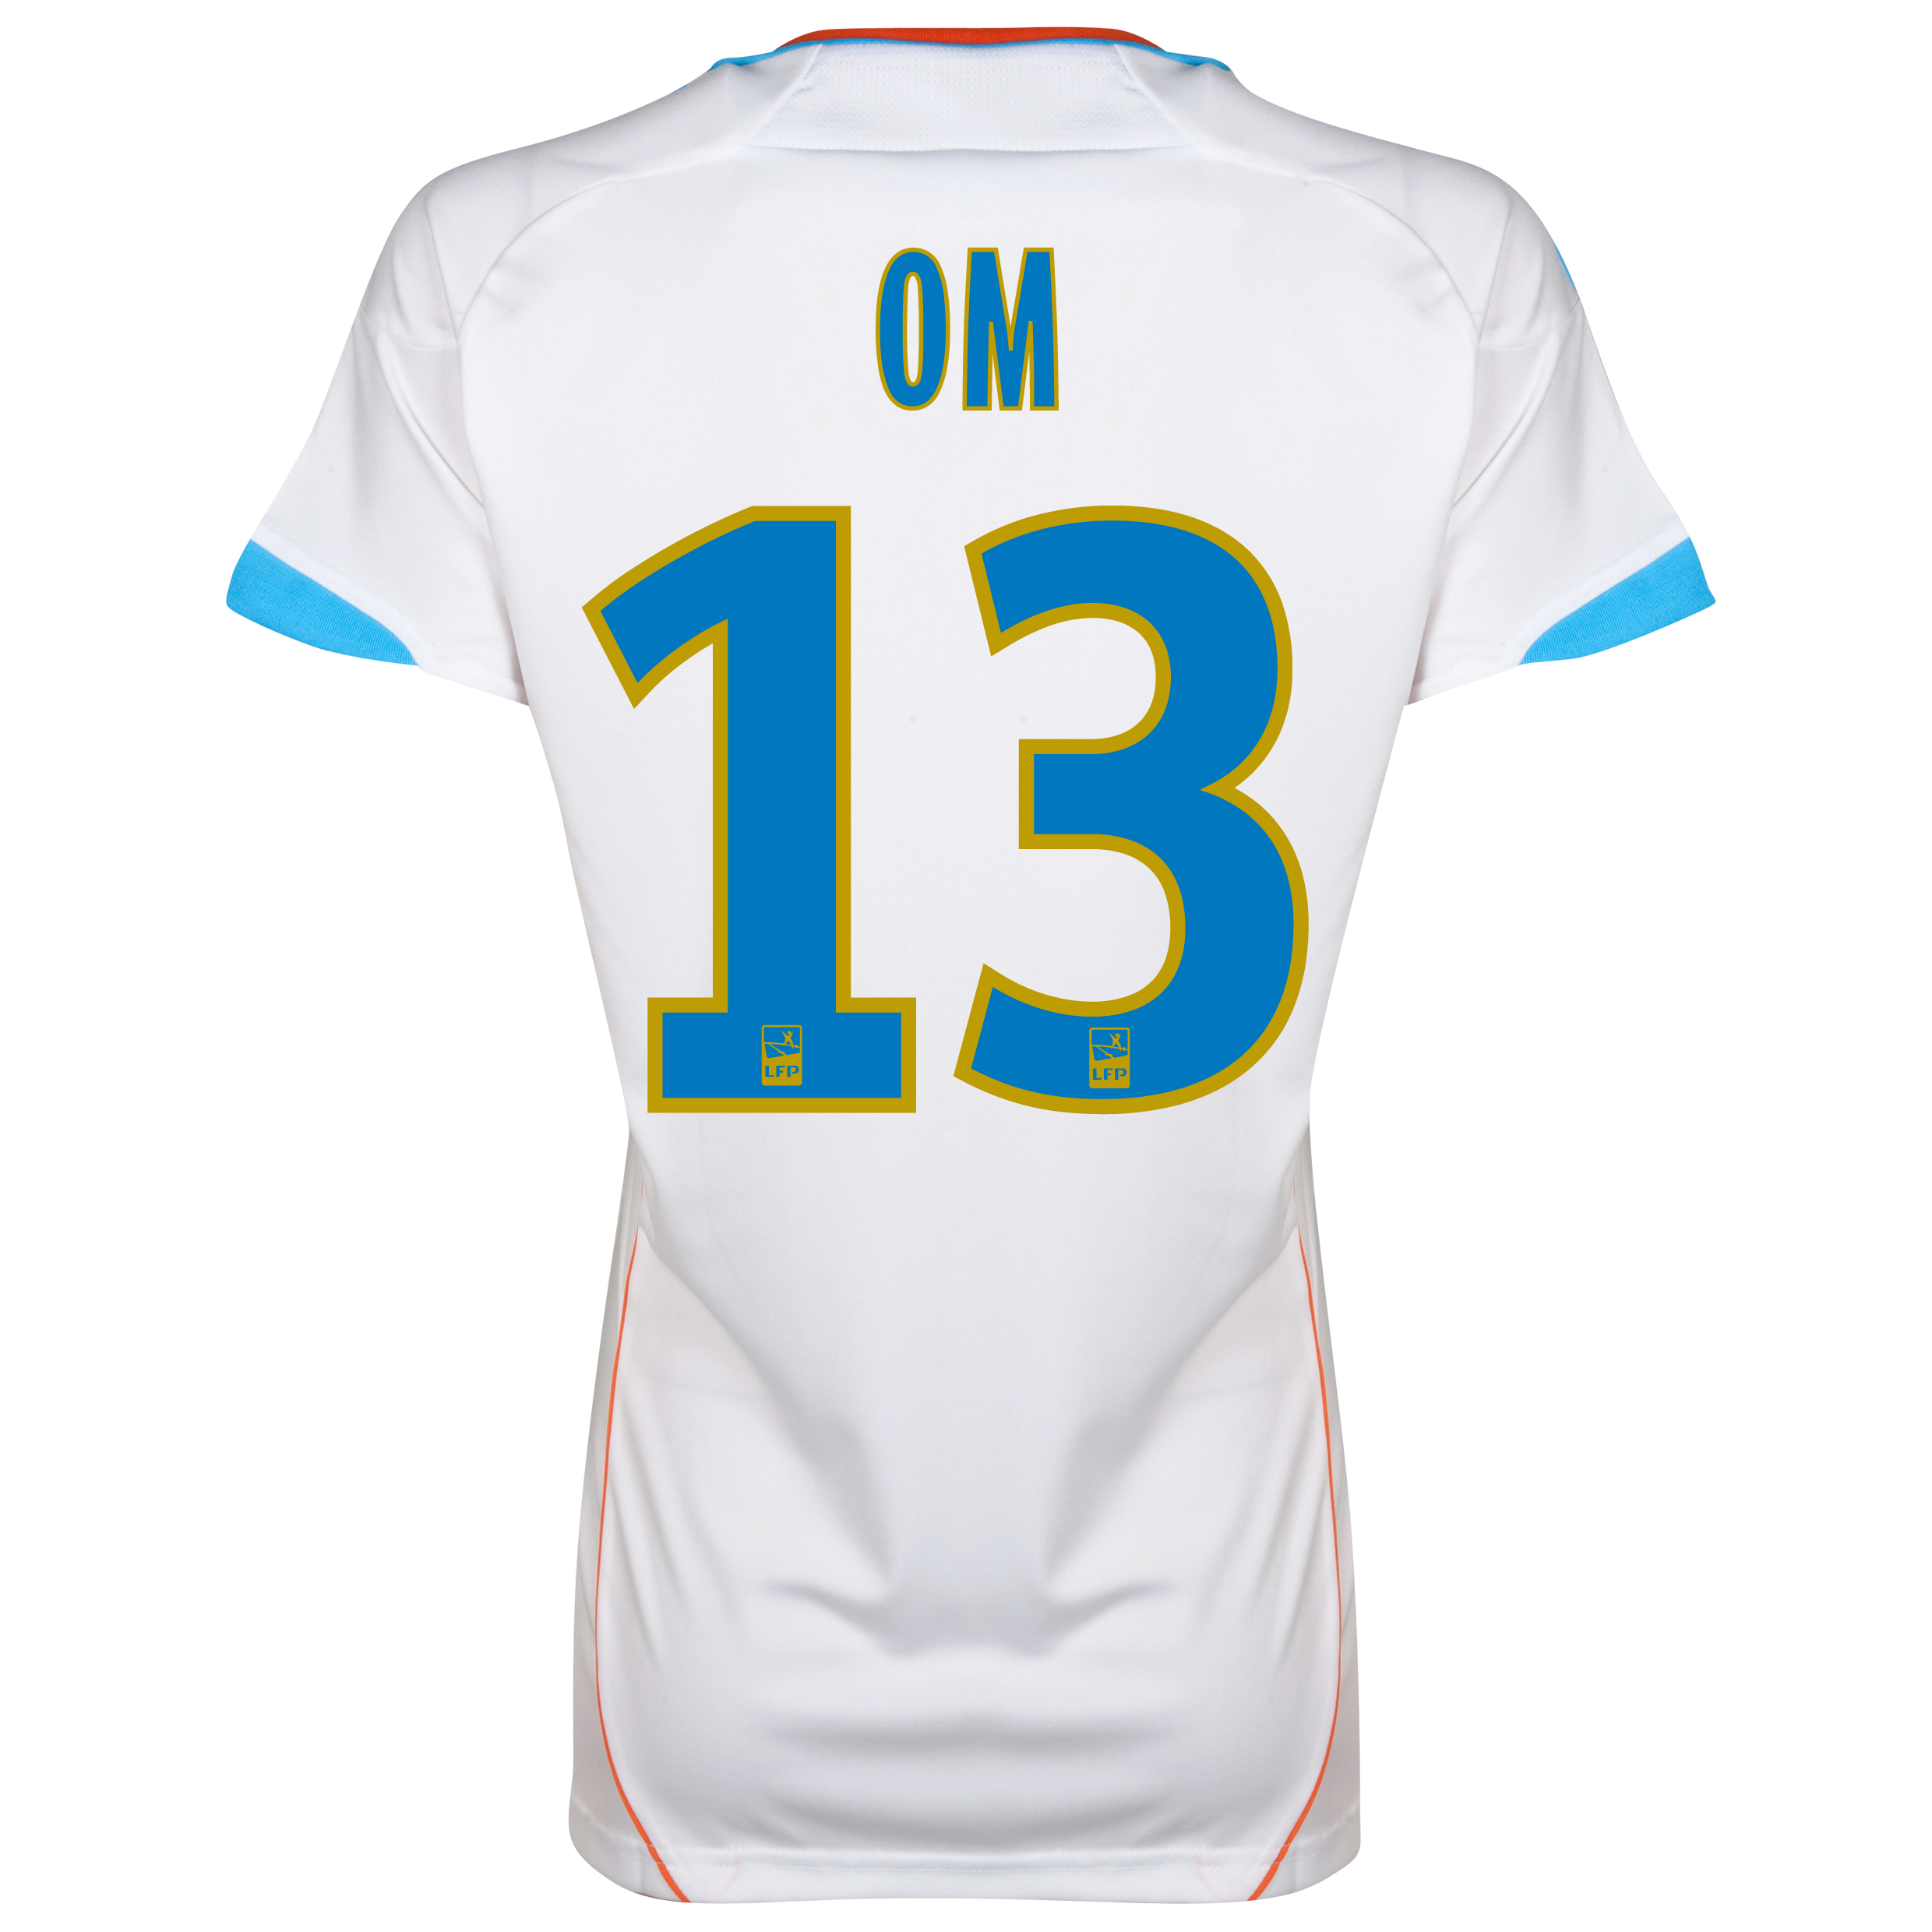 Olympique de Marseille Replica Home Shirt 2012/13 - Womens with OM 13 printing